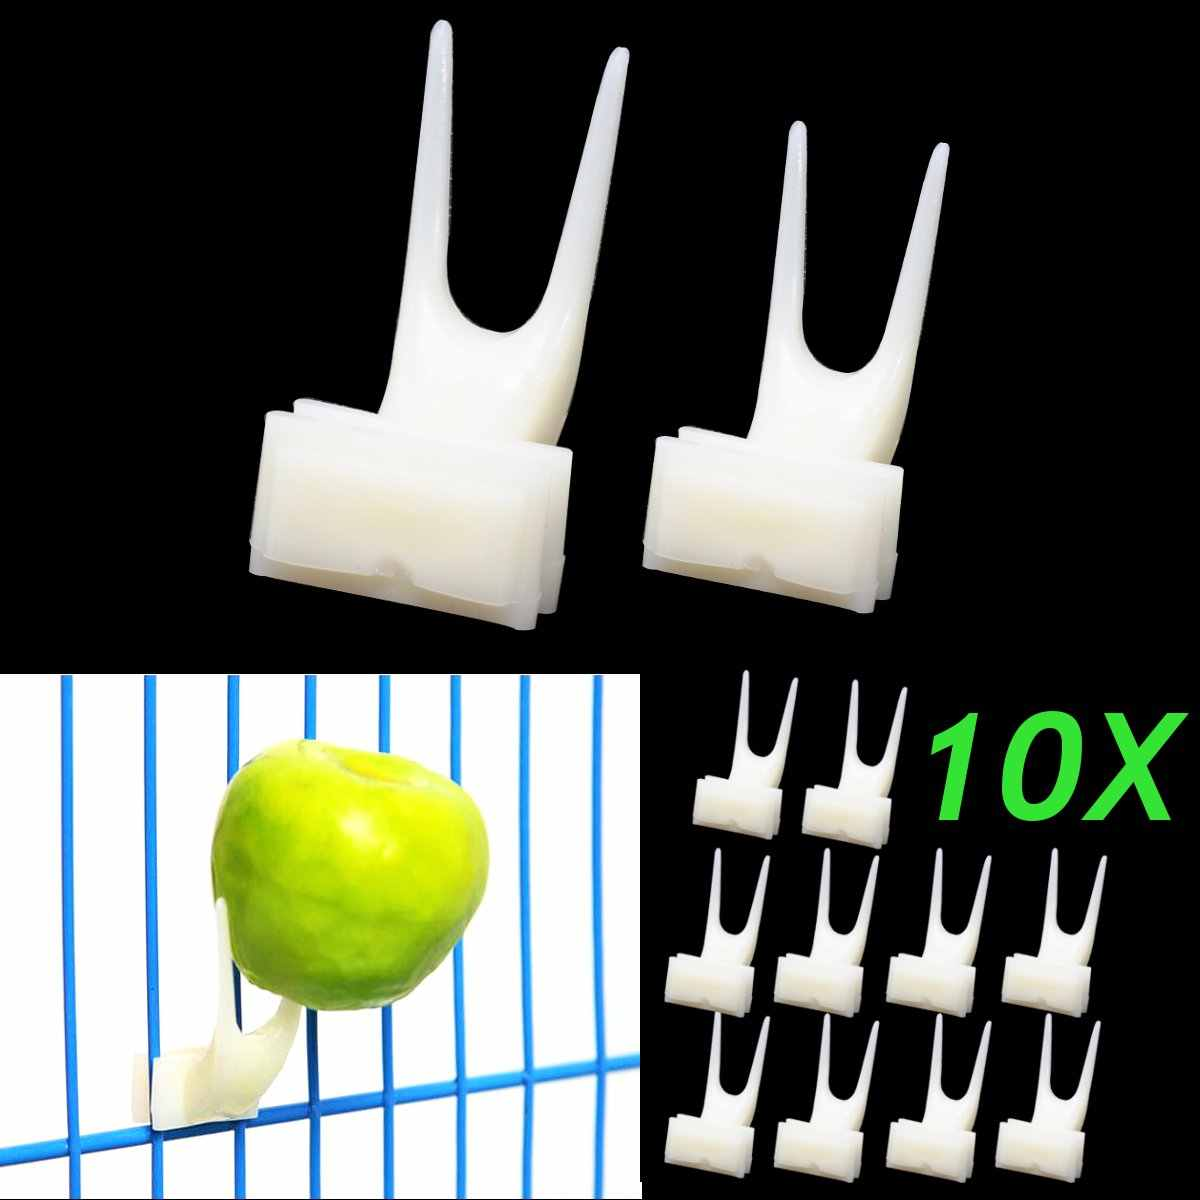 10Pcs/Lot Bird Feeder Fruit Fork Pet Parrot Set Install Cage Accessories Supplies Convenient Pet Device Small Large Size